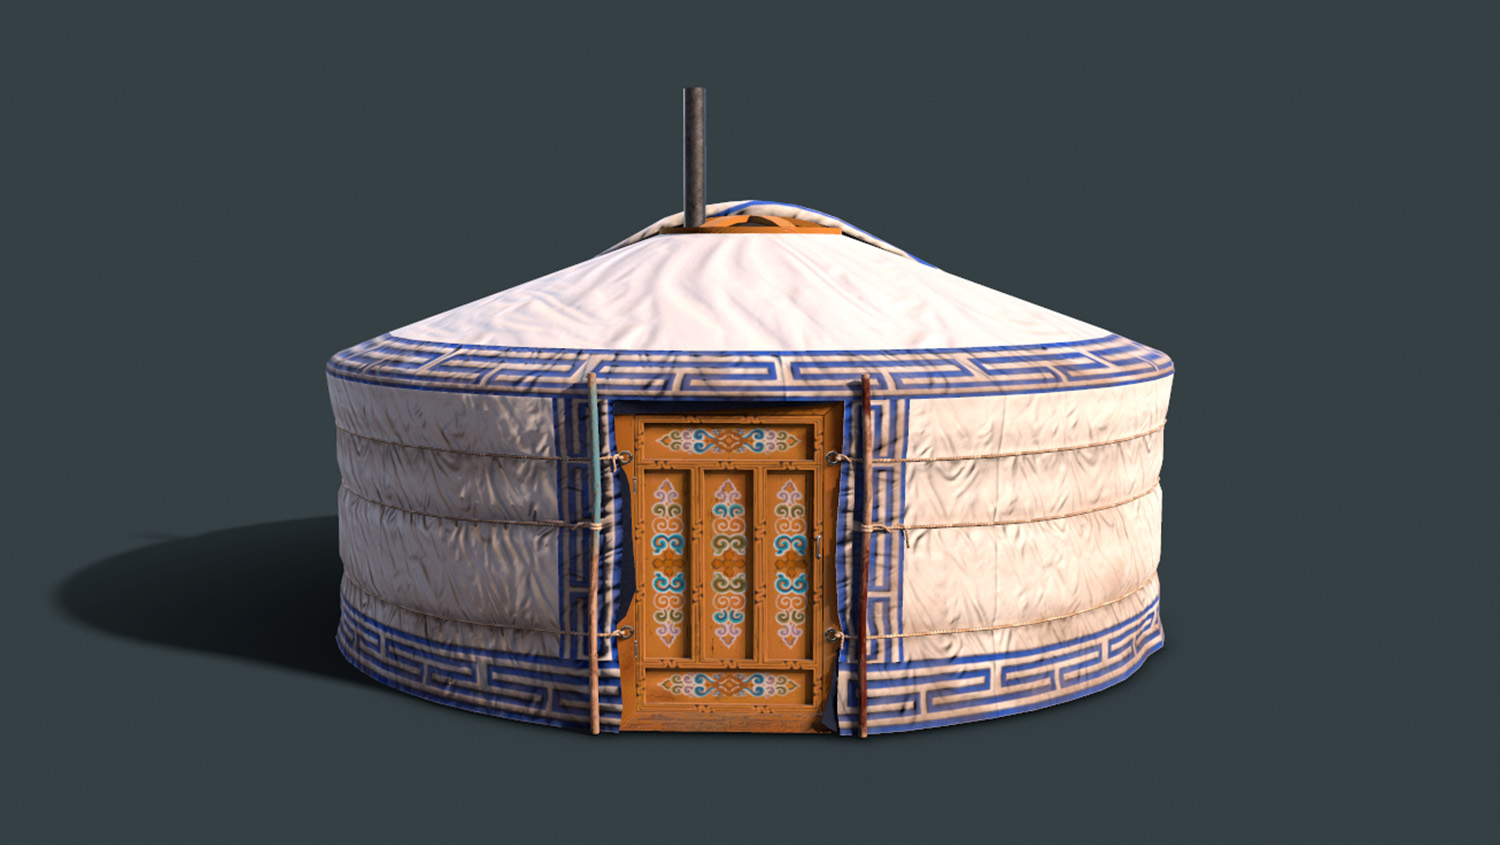 render of a yurt